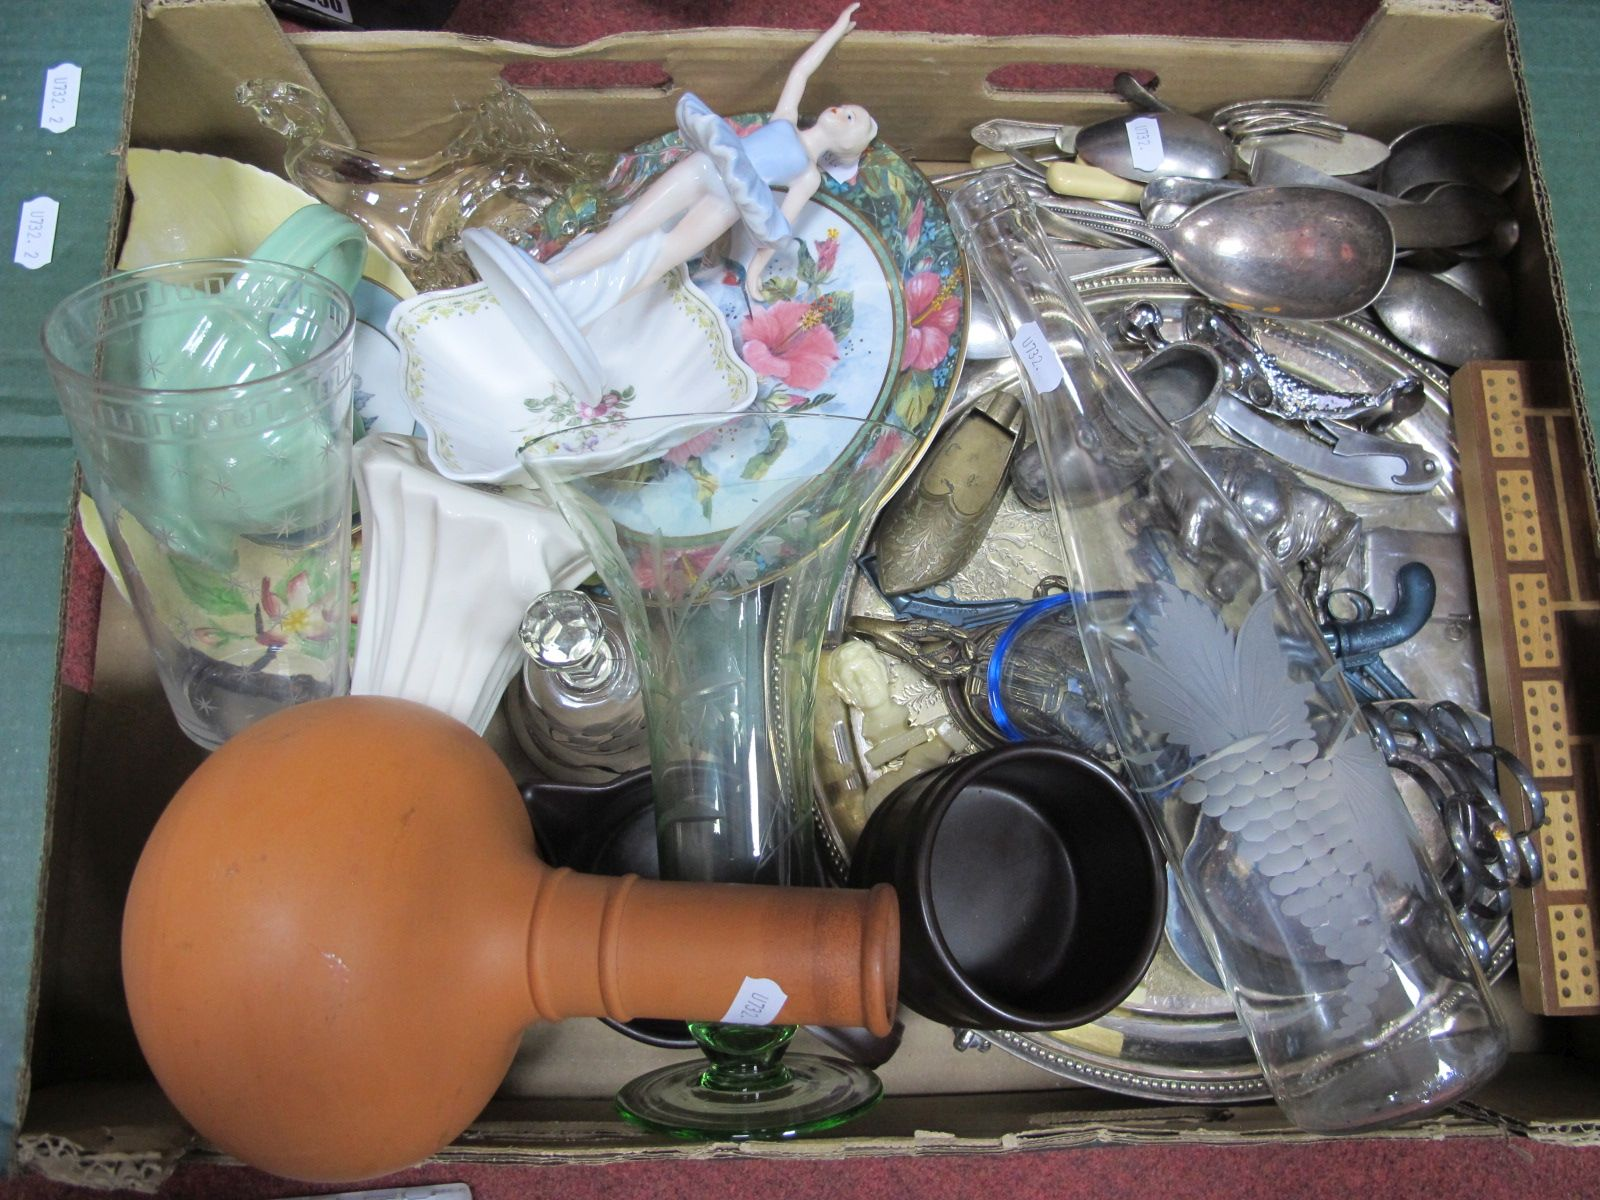 A Quantity of Plated Ware, glass and ceramics, to includes SBL, Ladel spoons, Portmeirion, etc.